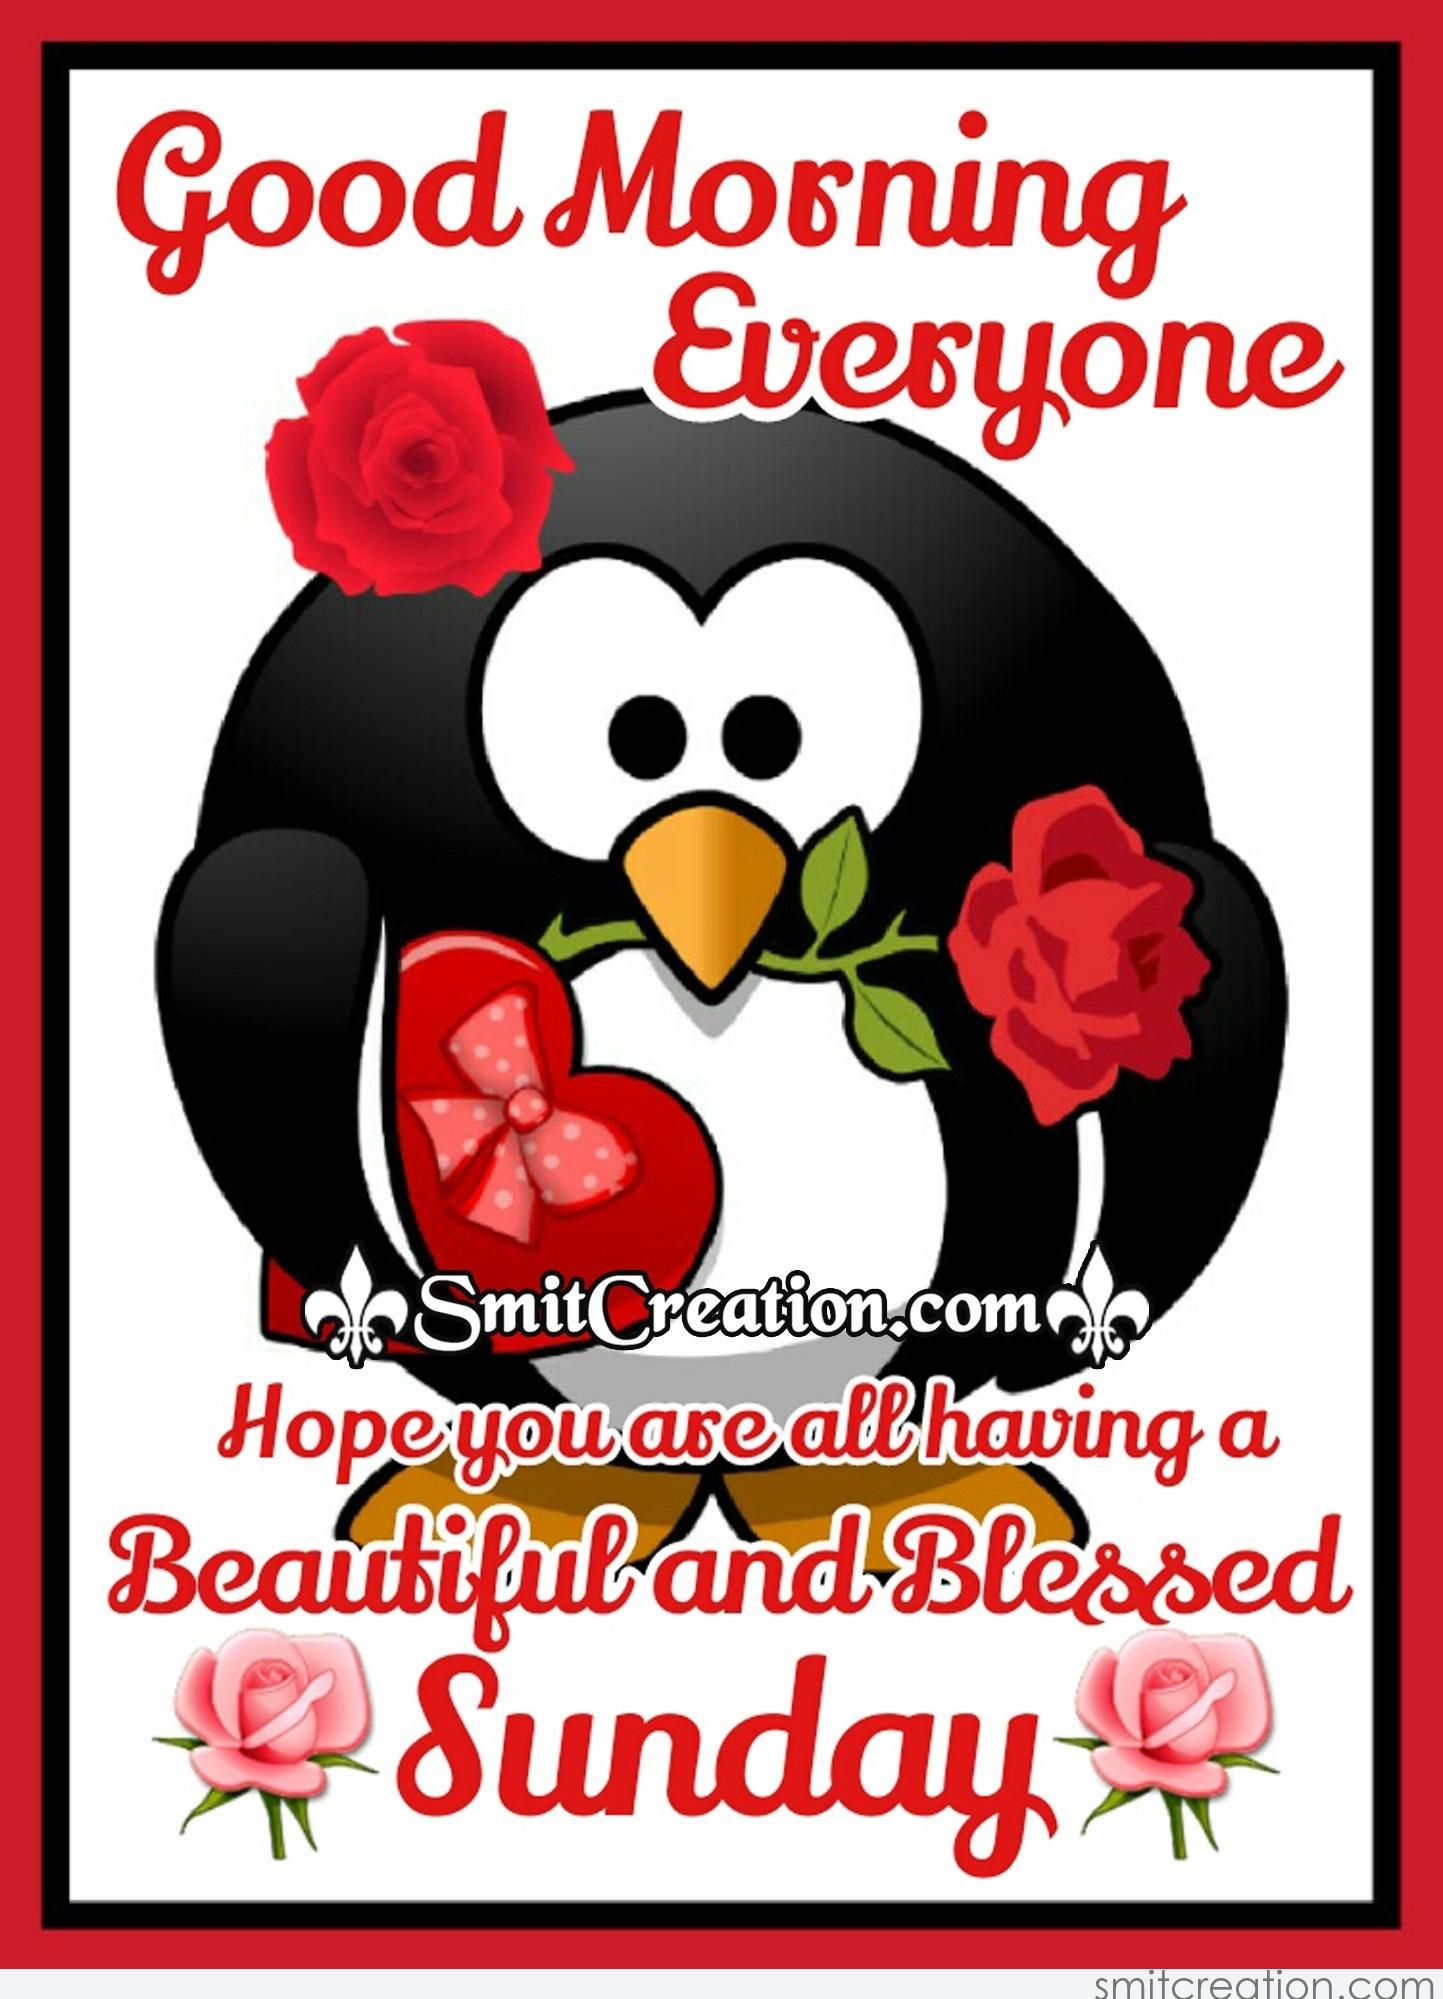 Good Morning Everyone Clipart : Sunday pictures and graphics smitcreation